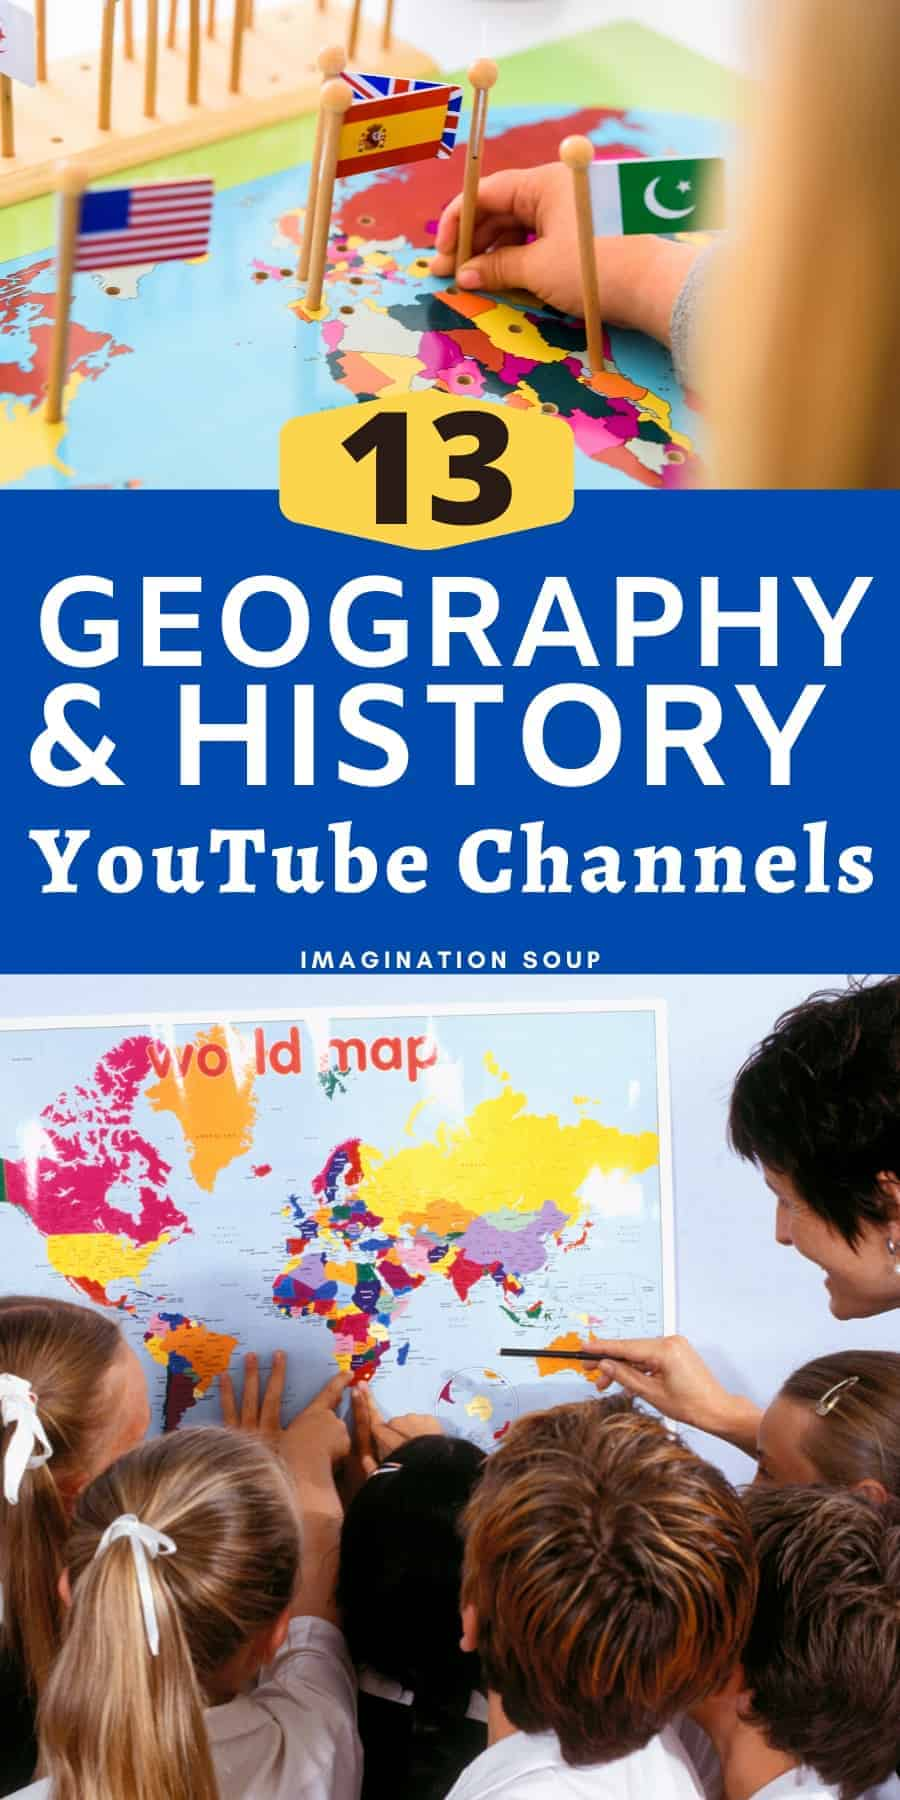 13 geography and history YouTube channels for elementary students